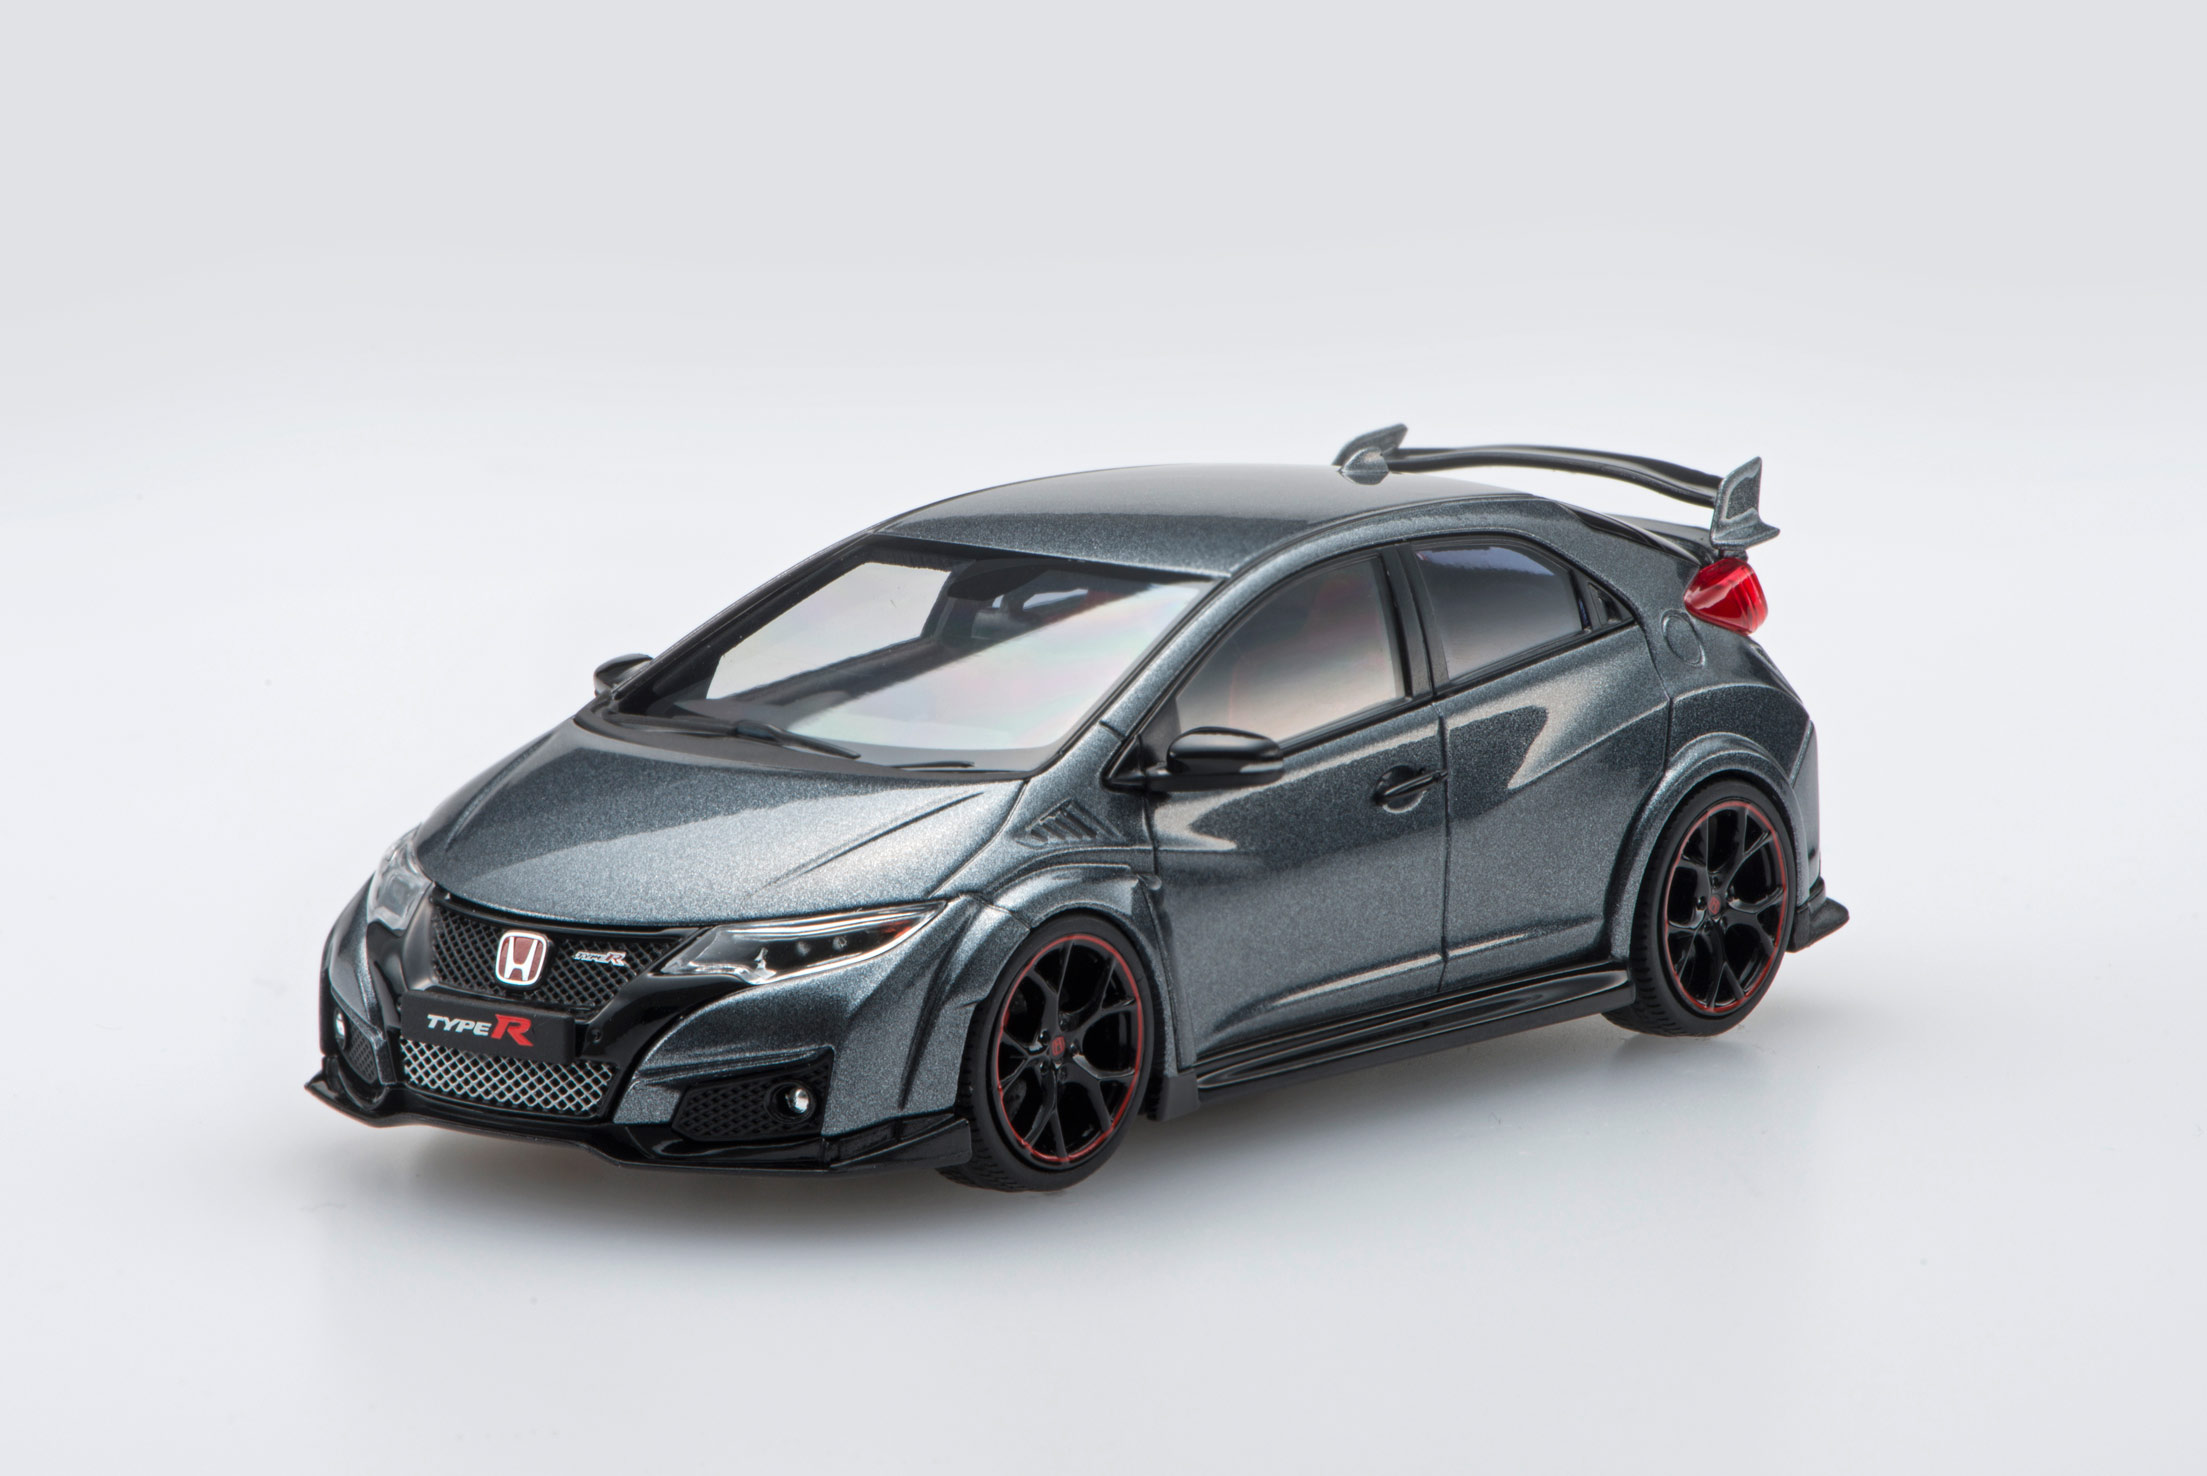 【45356】Honda CIVIC TYPE R 2015 (Polished Metal Metallic)